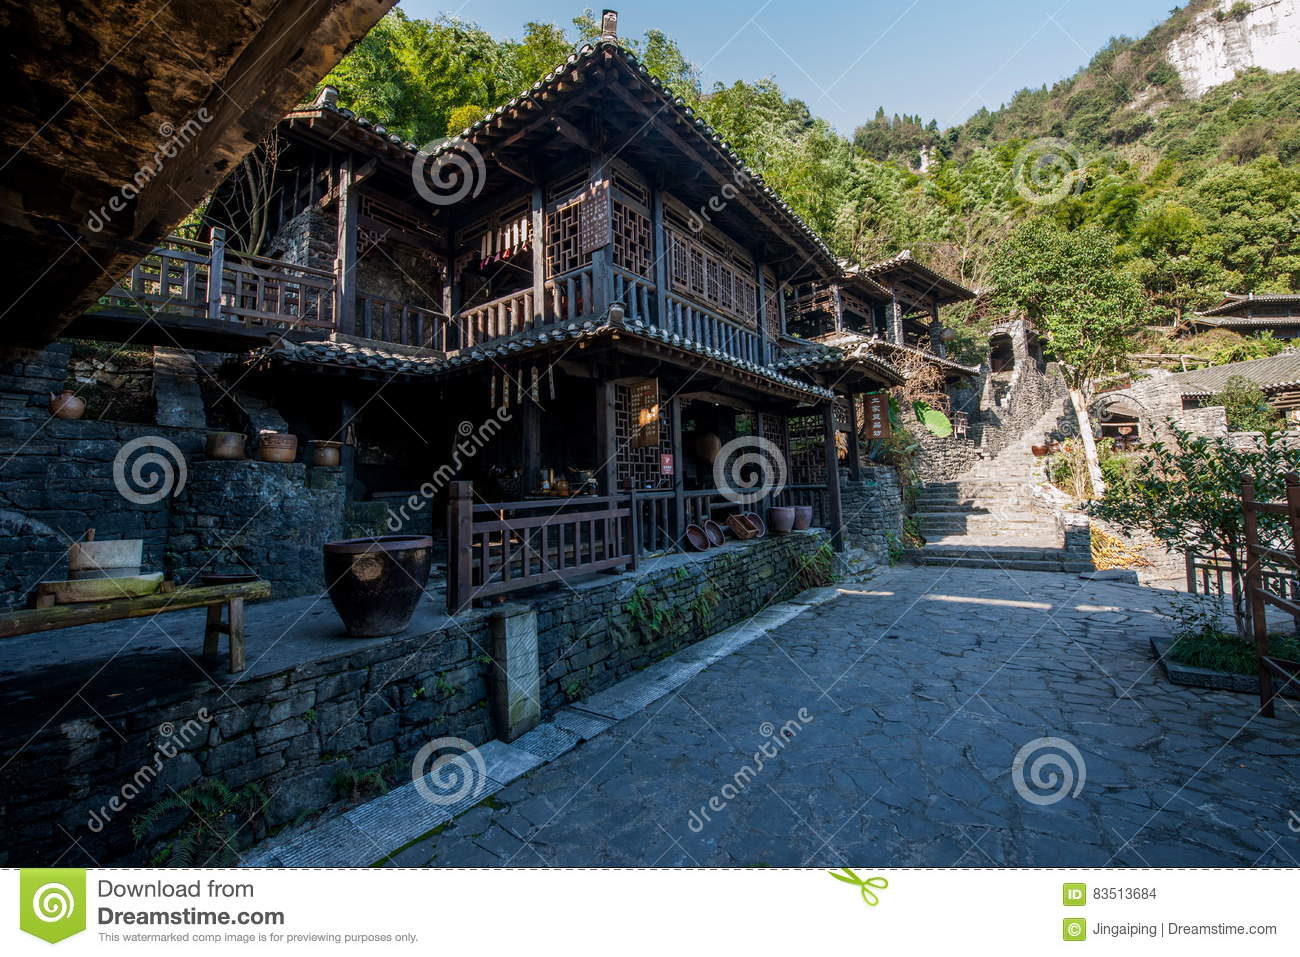 Hubei Yiling Yangtze River Three Gorges Dengying Xia in the `Three Gorges people` Ba Wang cottage